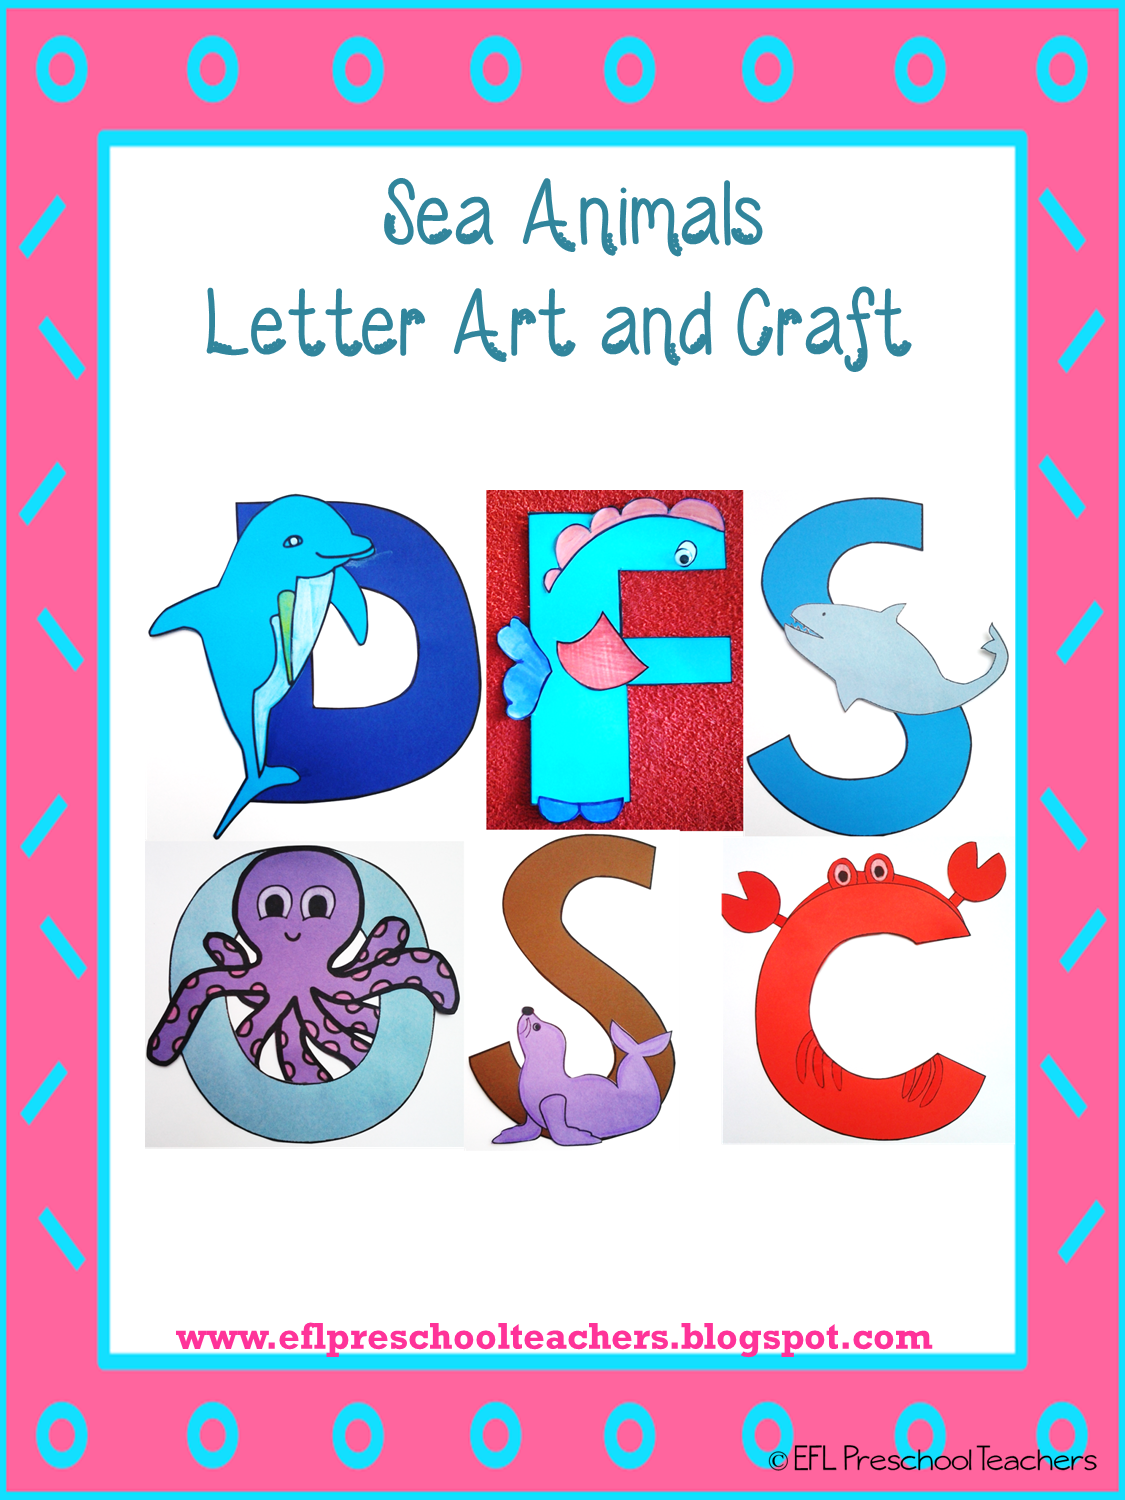 Esl Efl Preschool Teachers Alphabet Letters Art And Craft